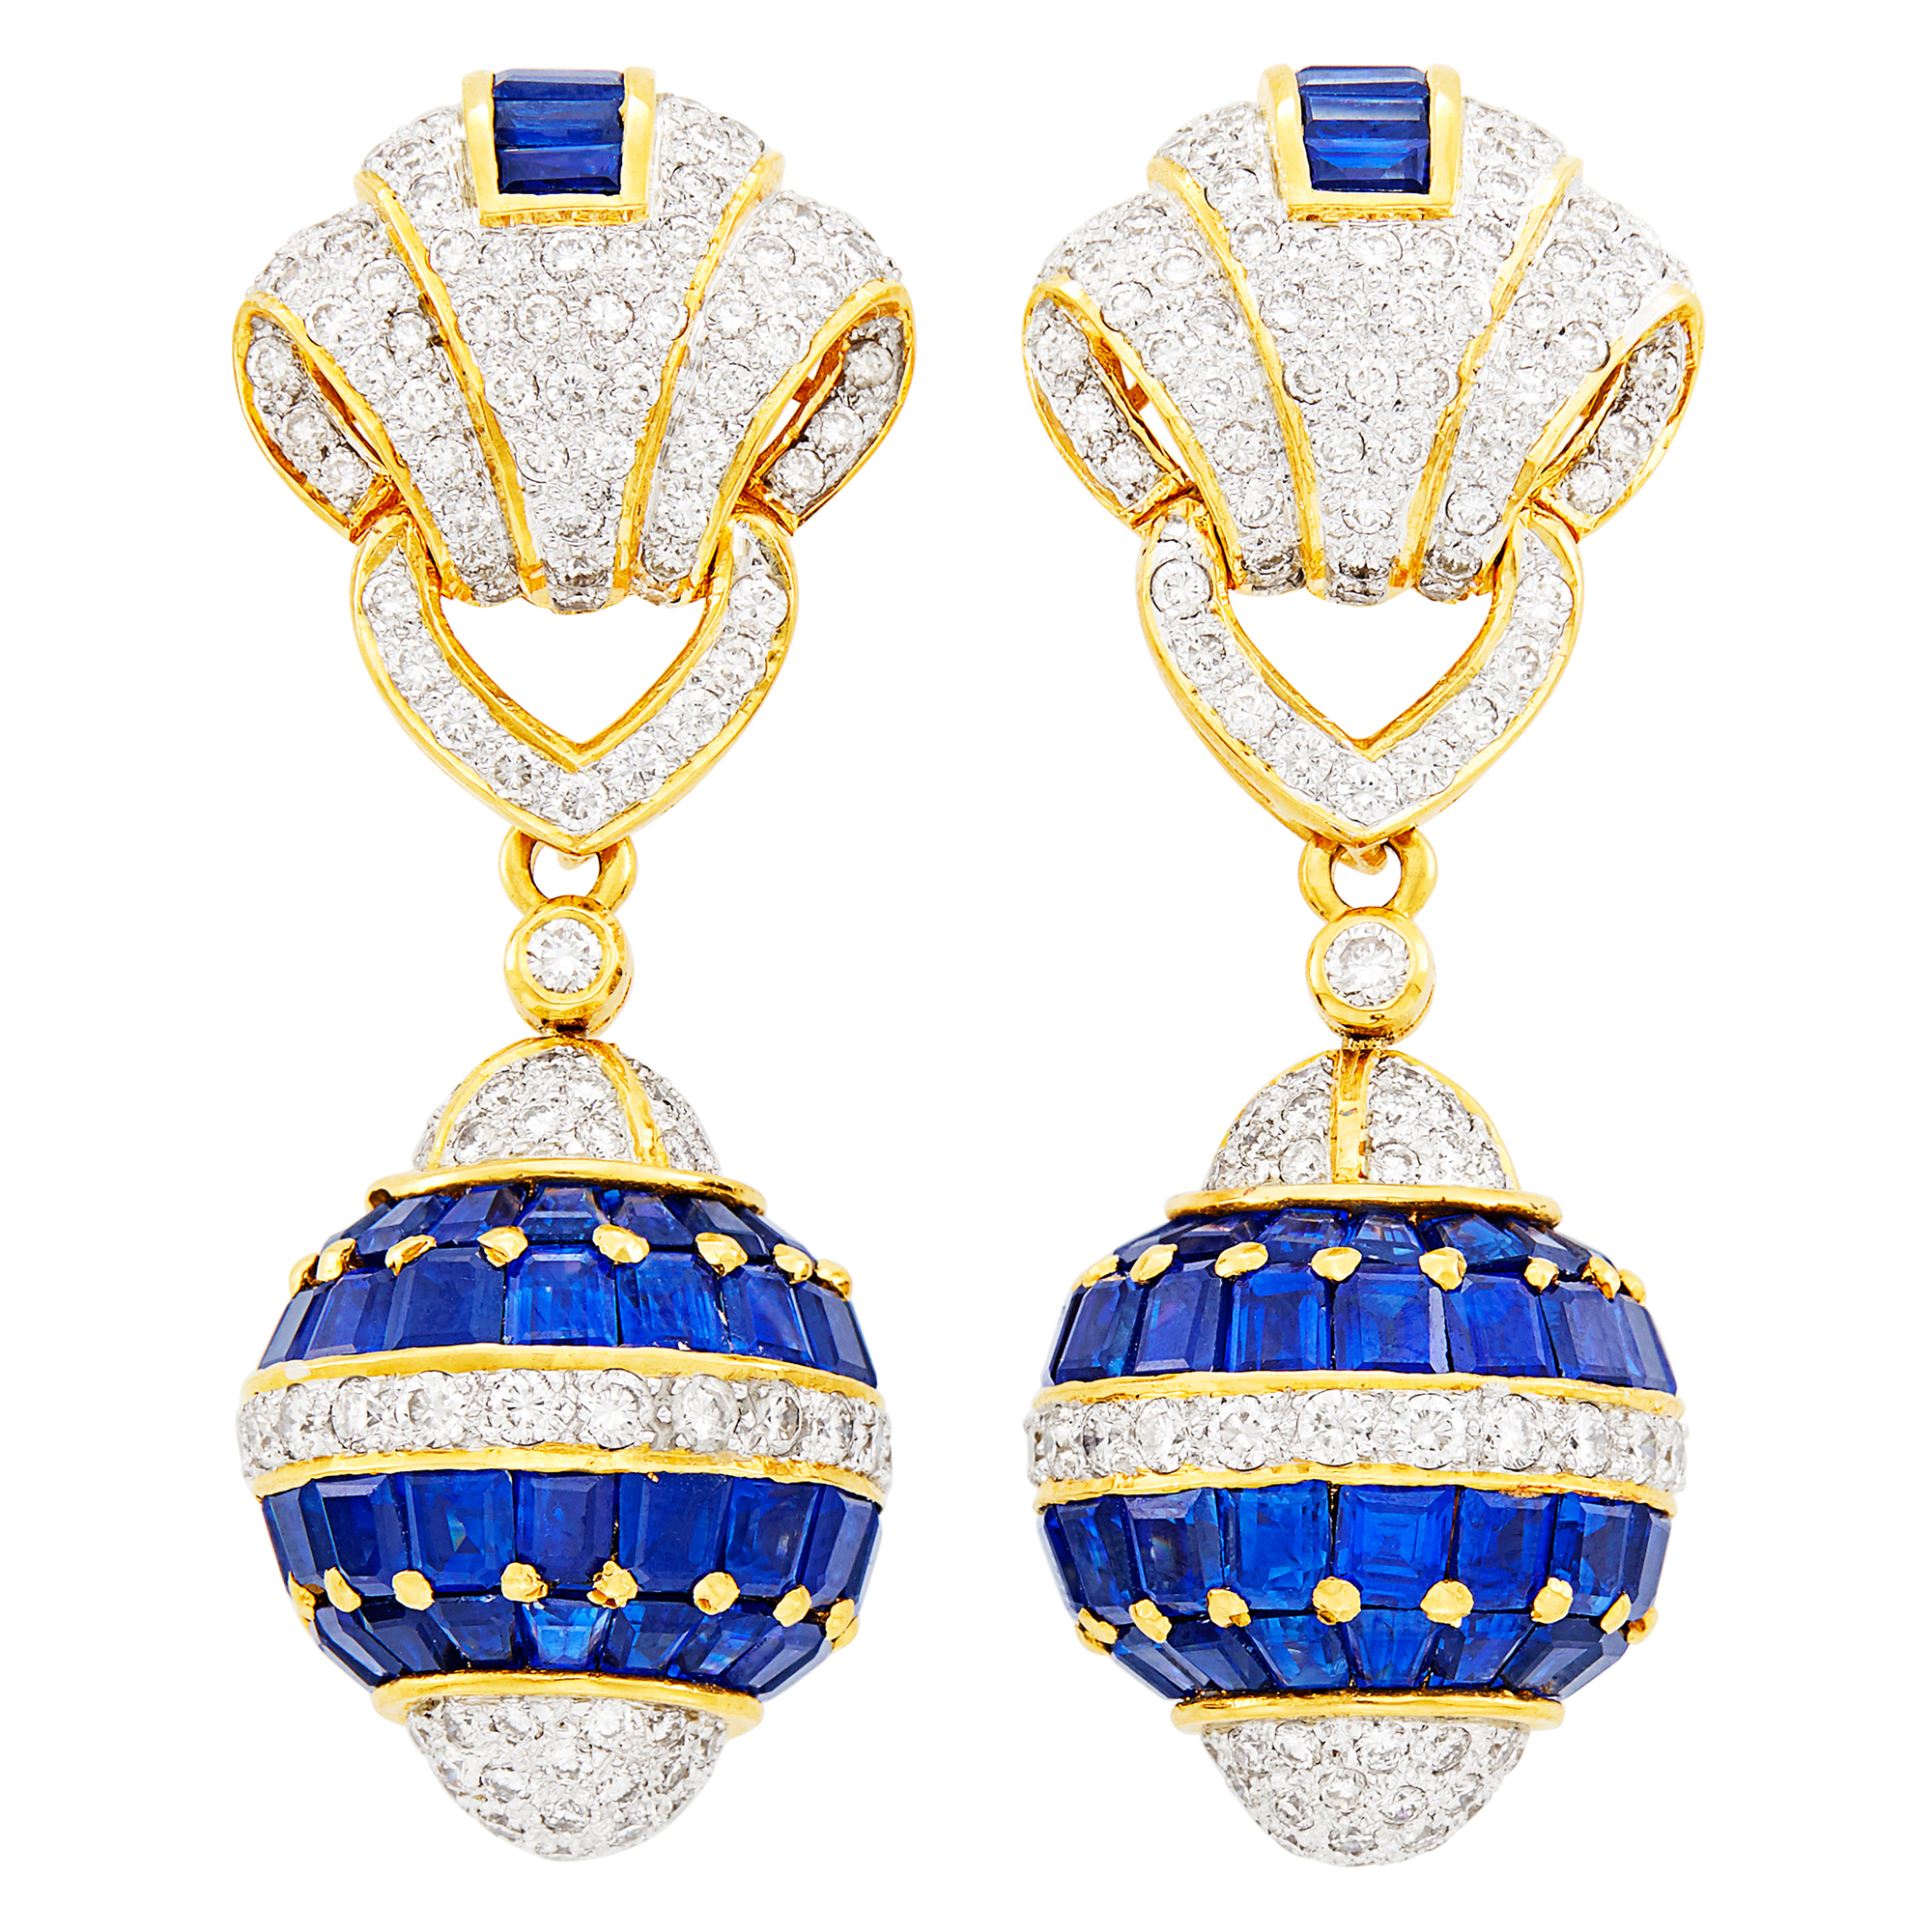 Lot image - Pair of Gold, Sapphire and Diamond Pendant-Earclips